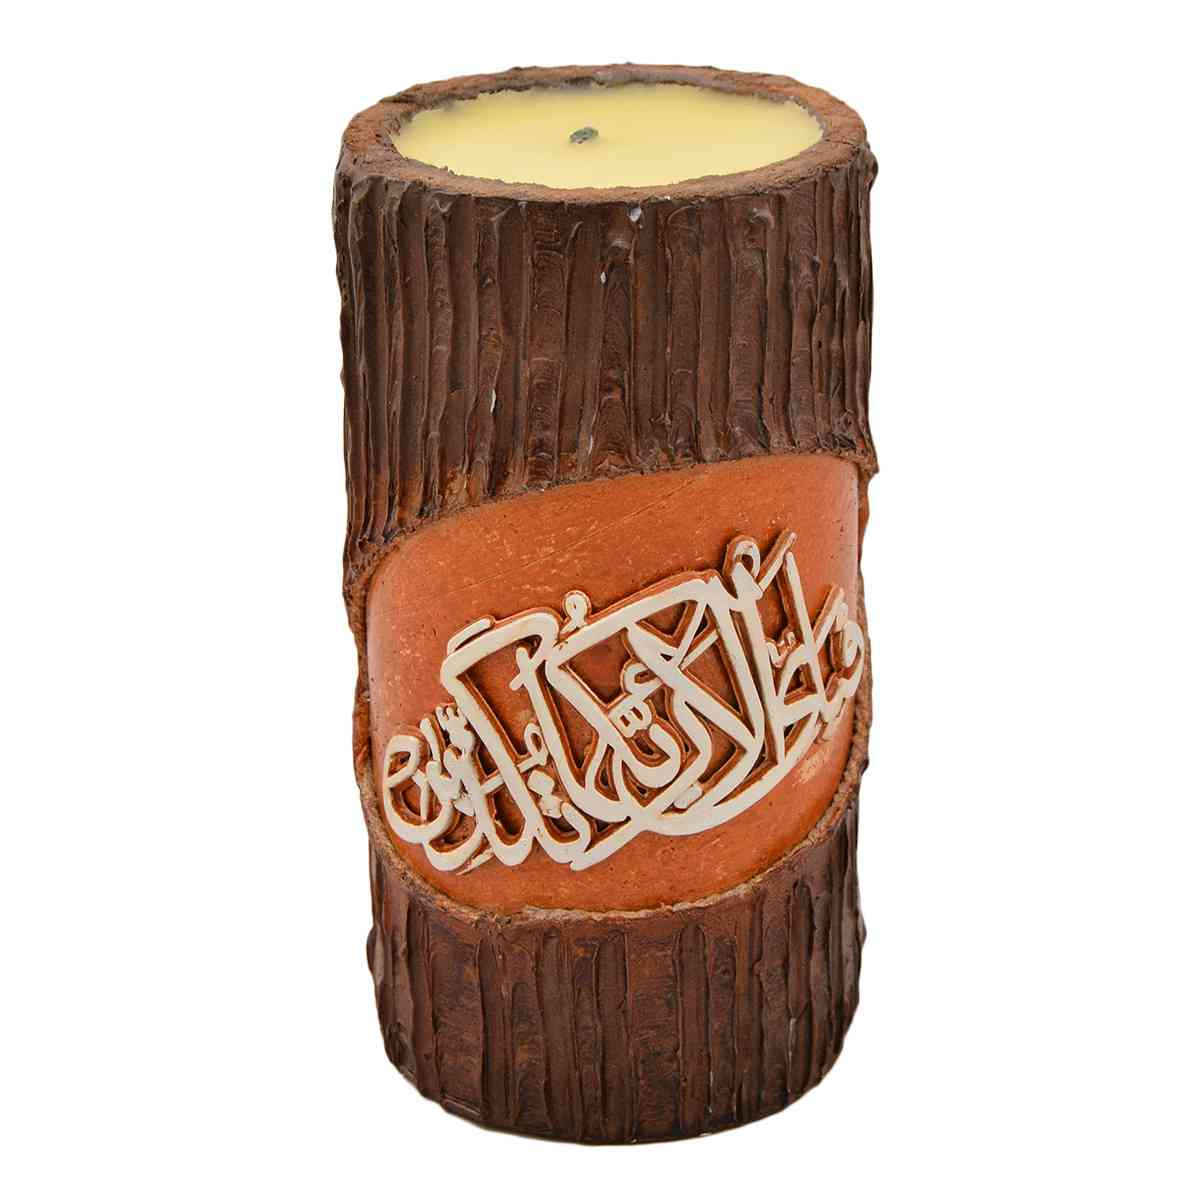 Original Wooden Calligraphic Candle for Room Decoration (Width 3.5 Inch x Height 7 Inch x Depth 7 Inch)